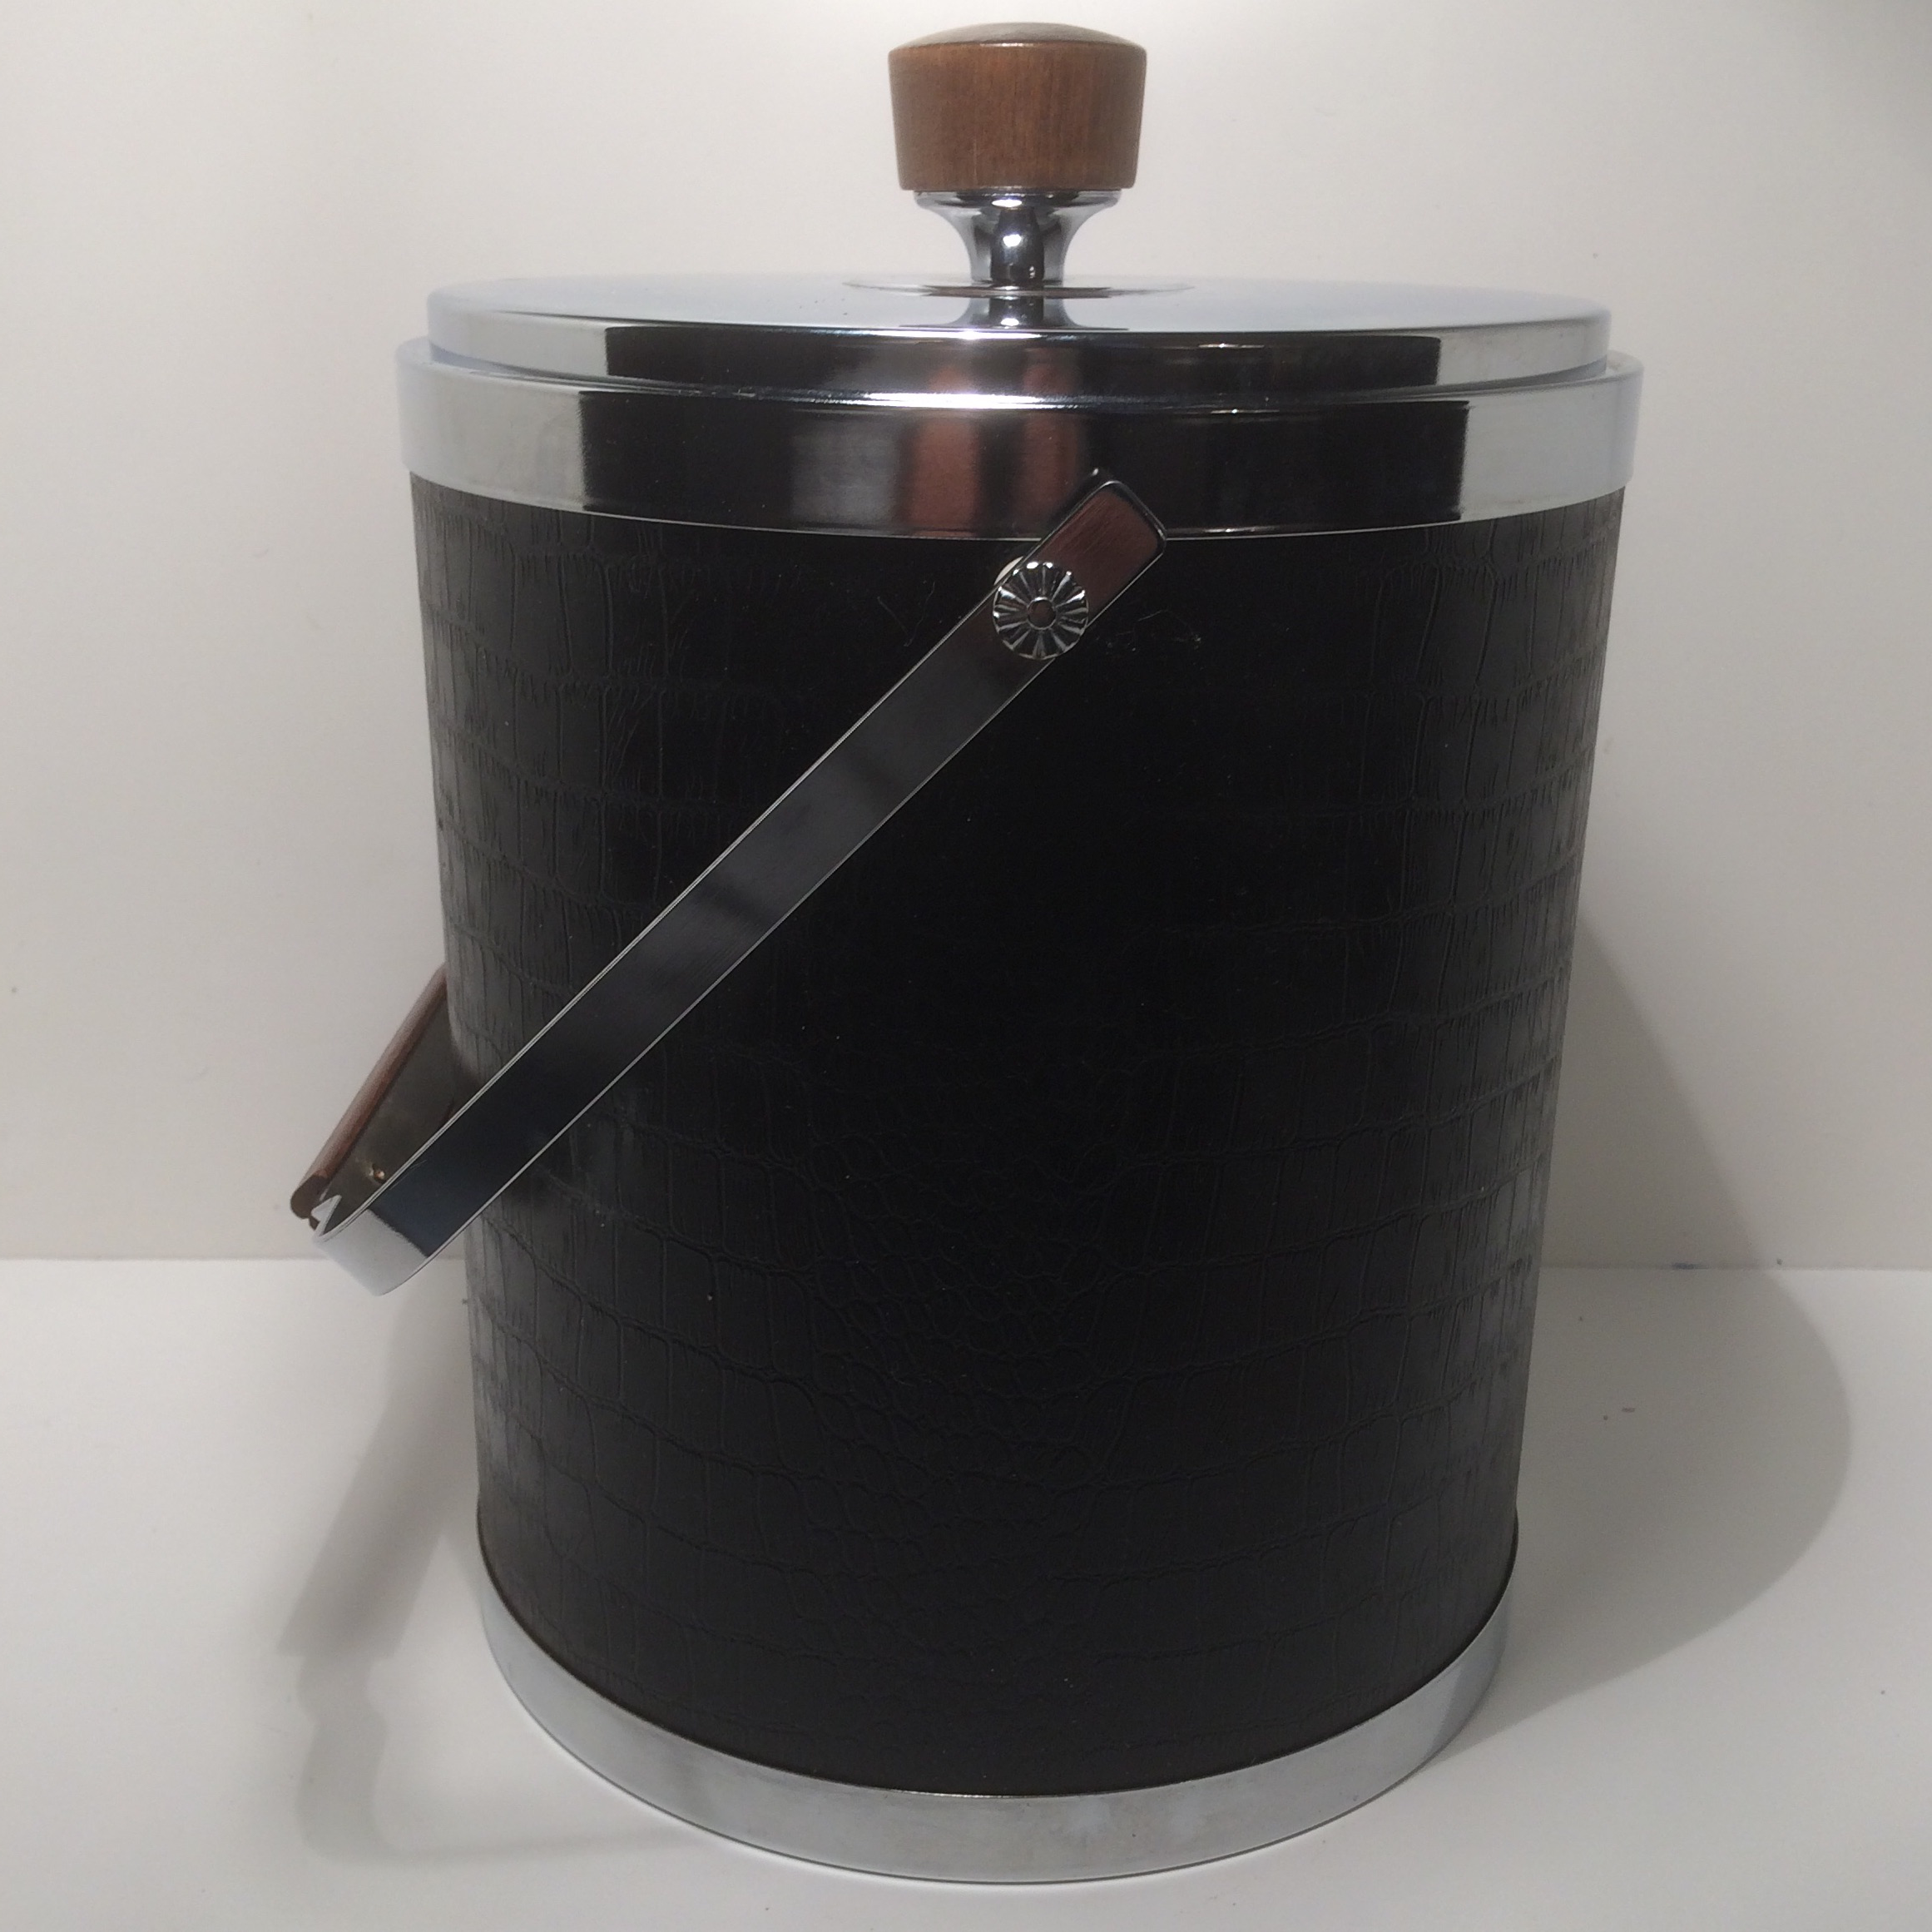 High Quality Kromex Black Leather And Chrome Ice Bucket With Walnut Mid Century Modern    Image 2 Good Looking